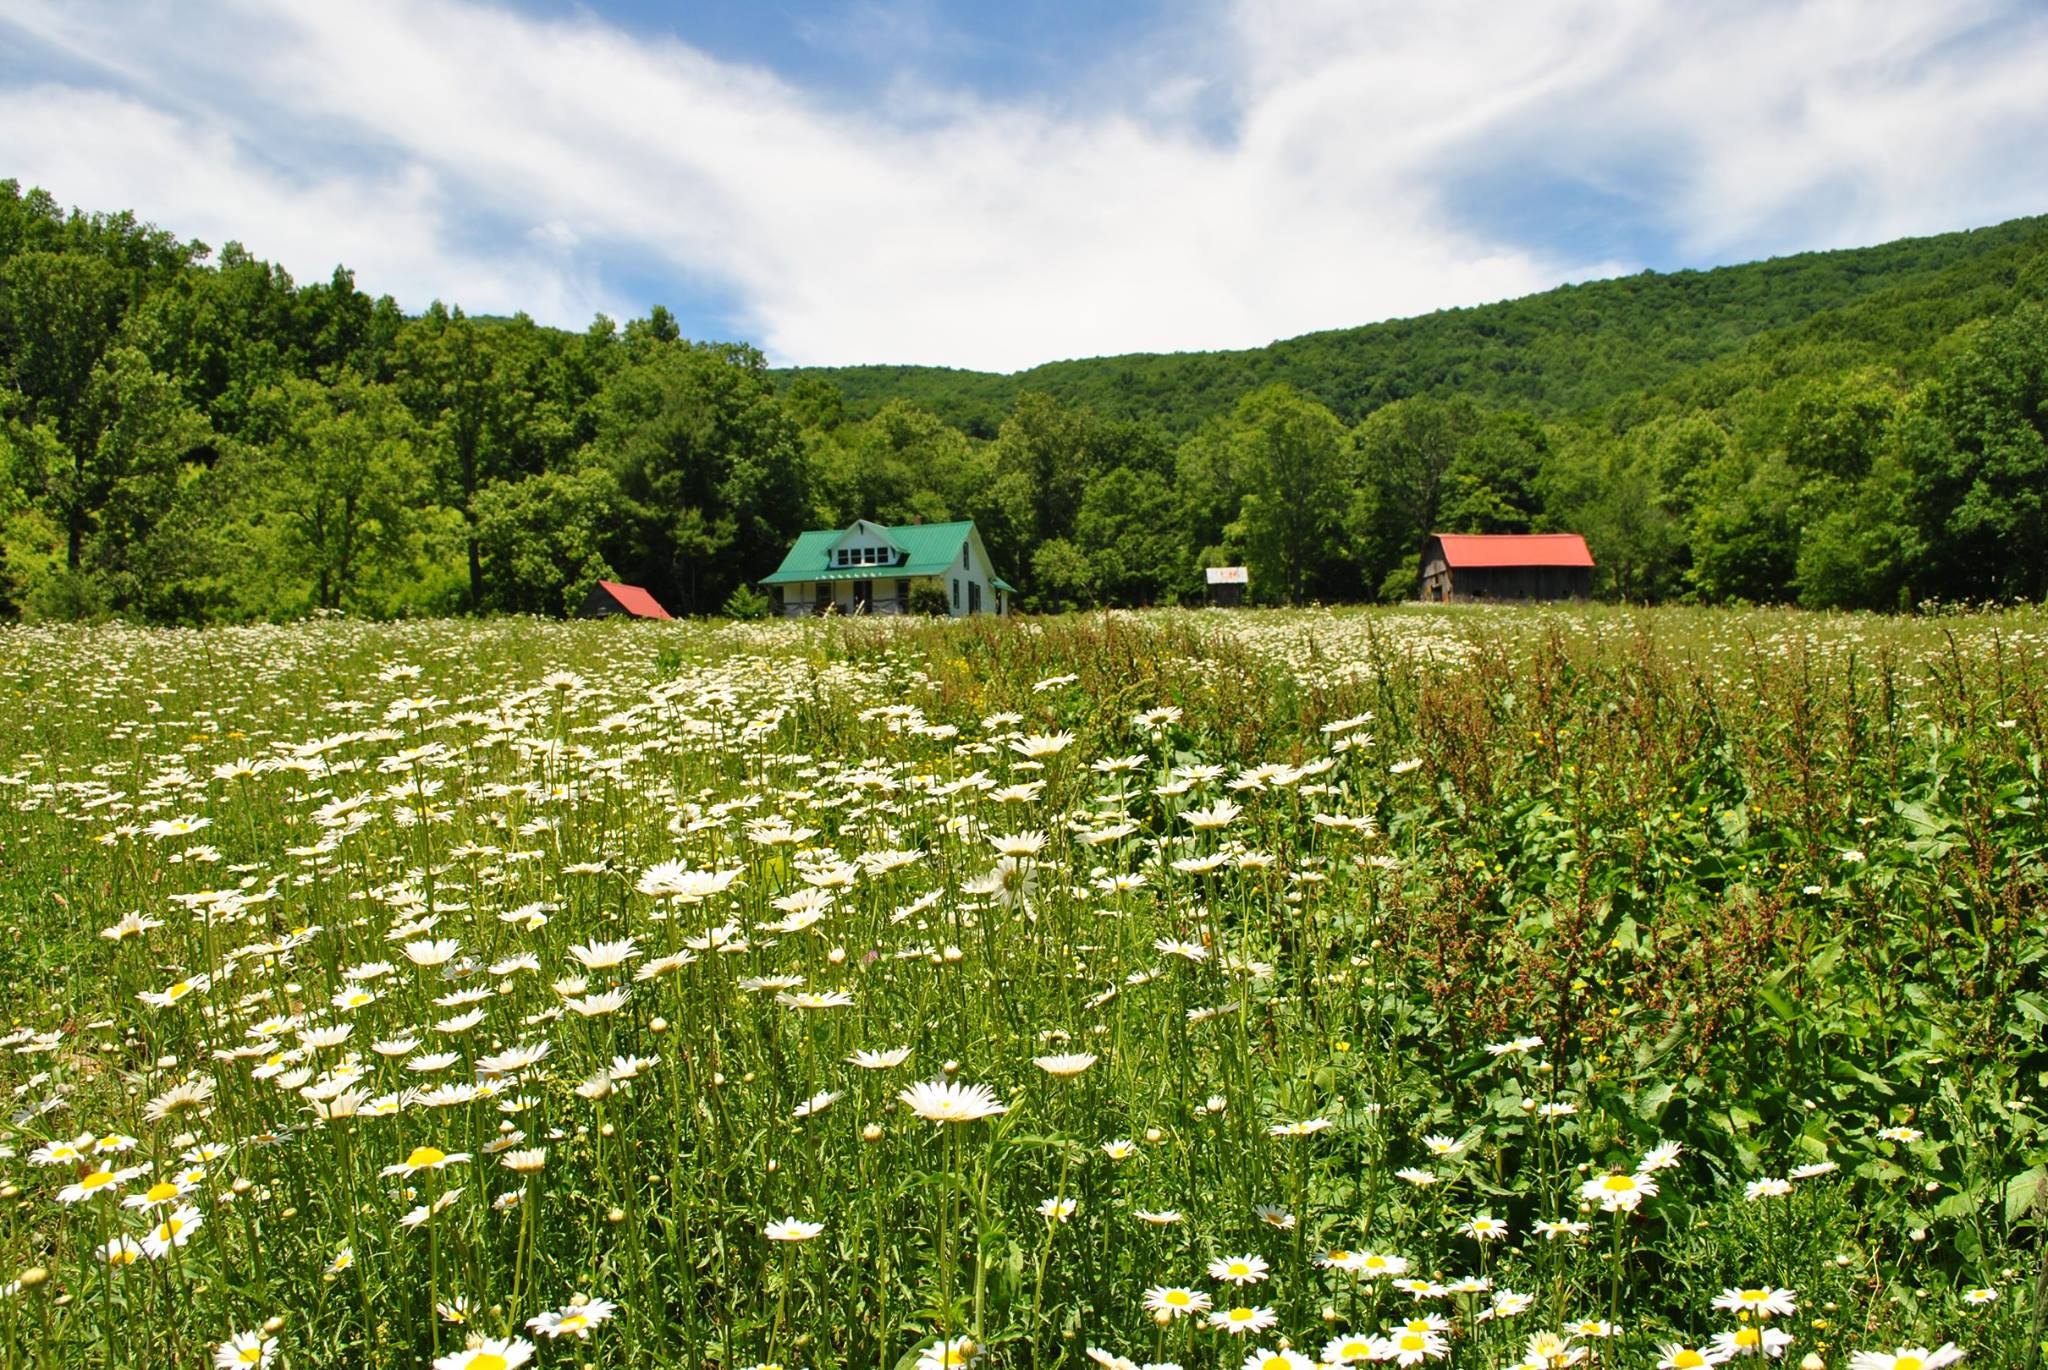 Summer daisies adorn the pasture which is the Pioneer Homestead's front yard